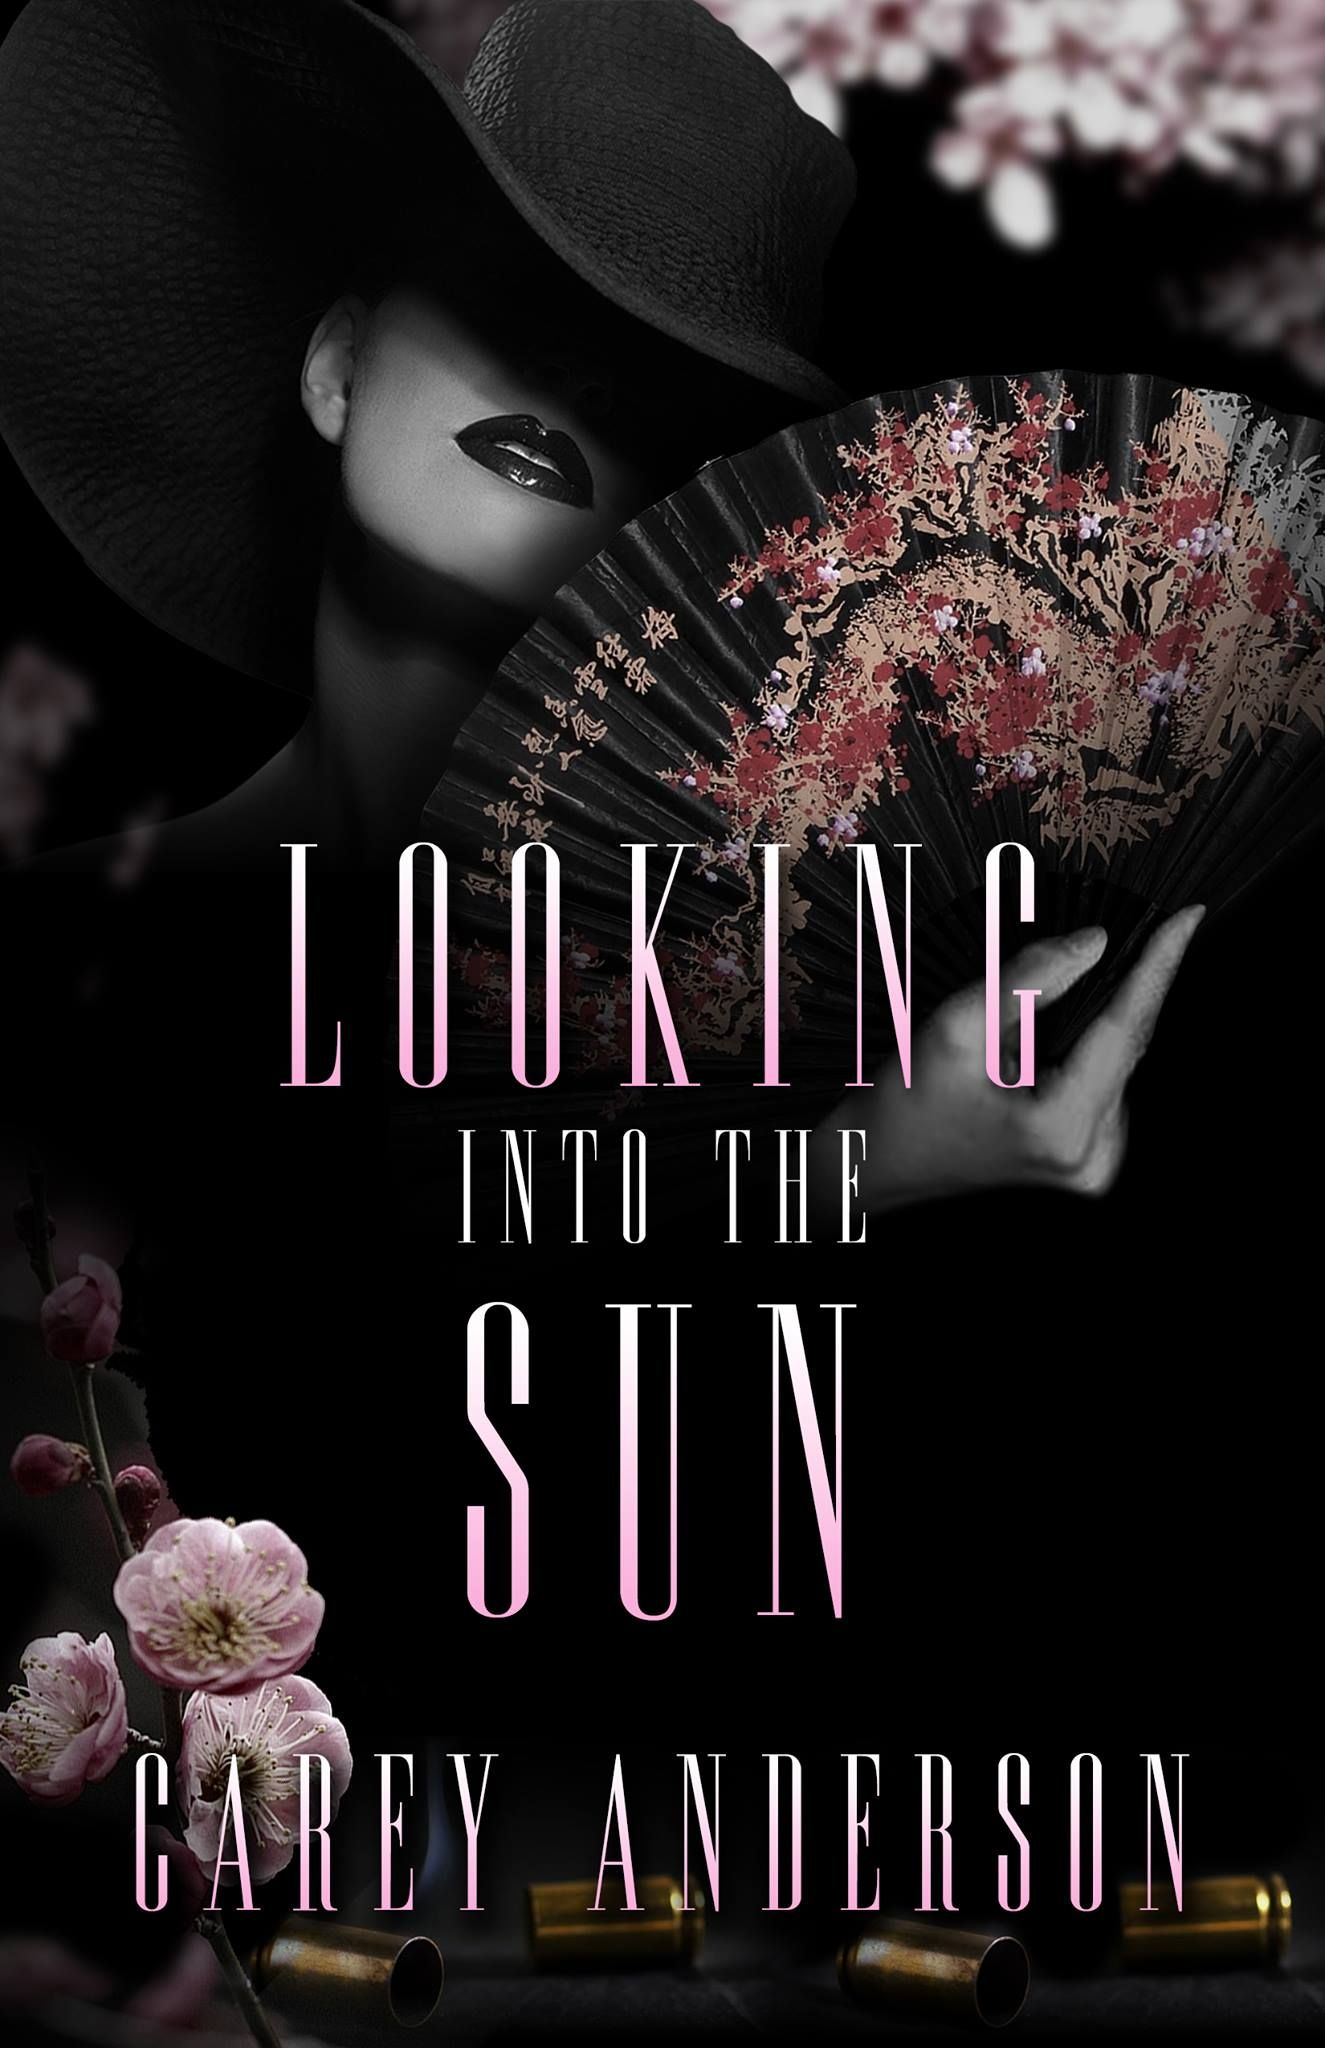 Pin by carey anderson on looking into the sun self